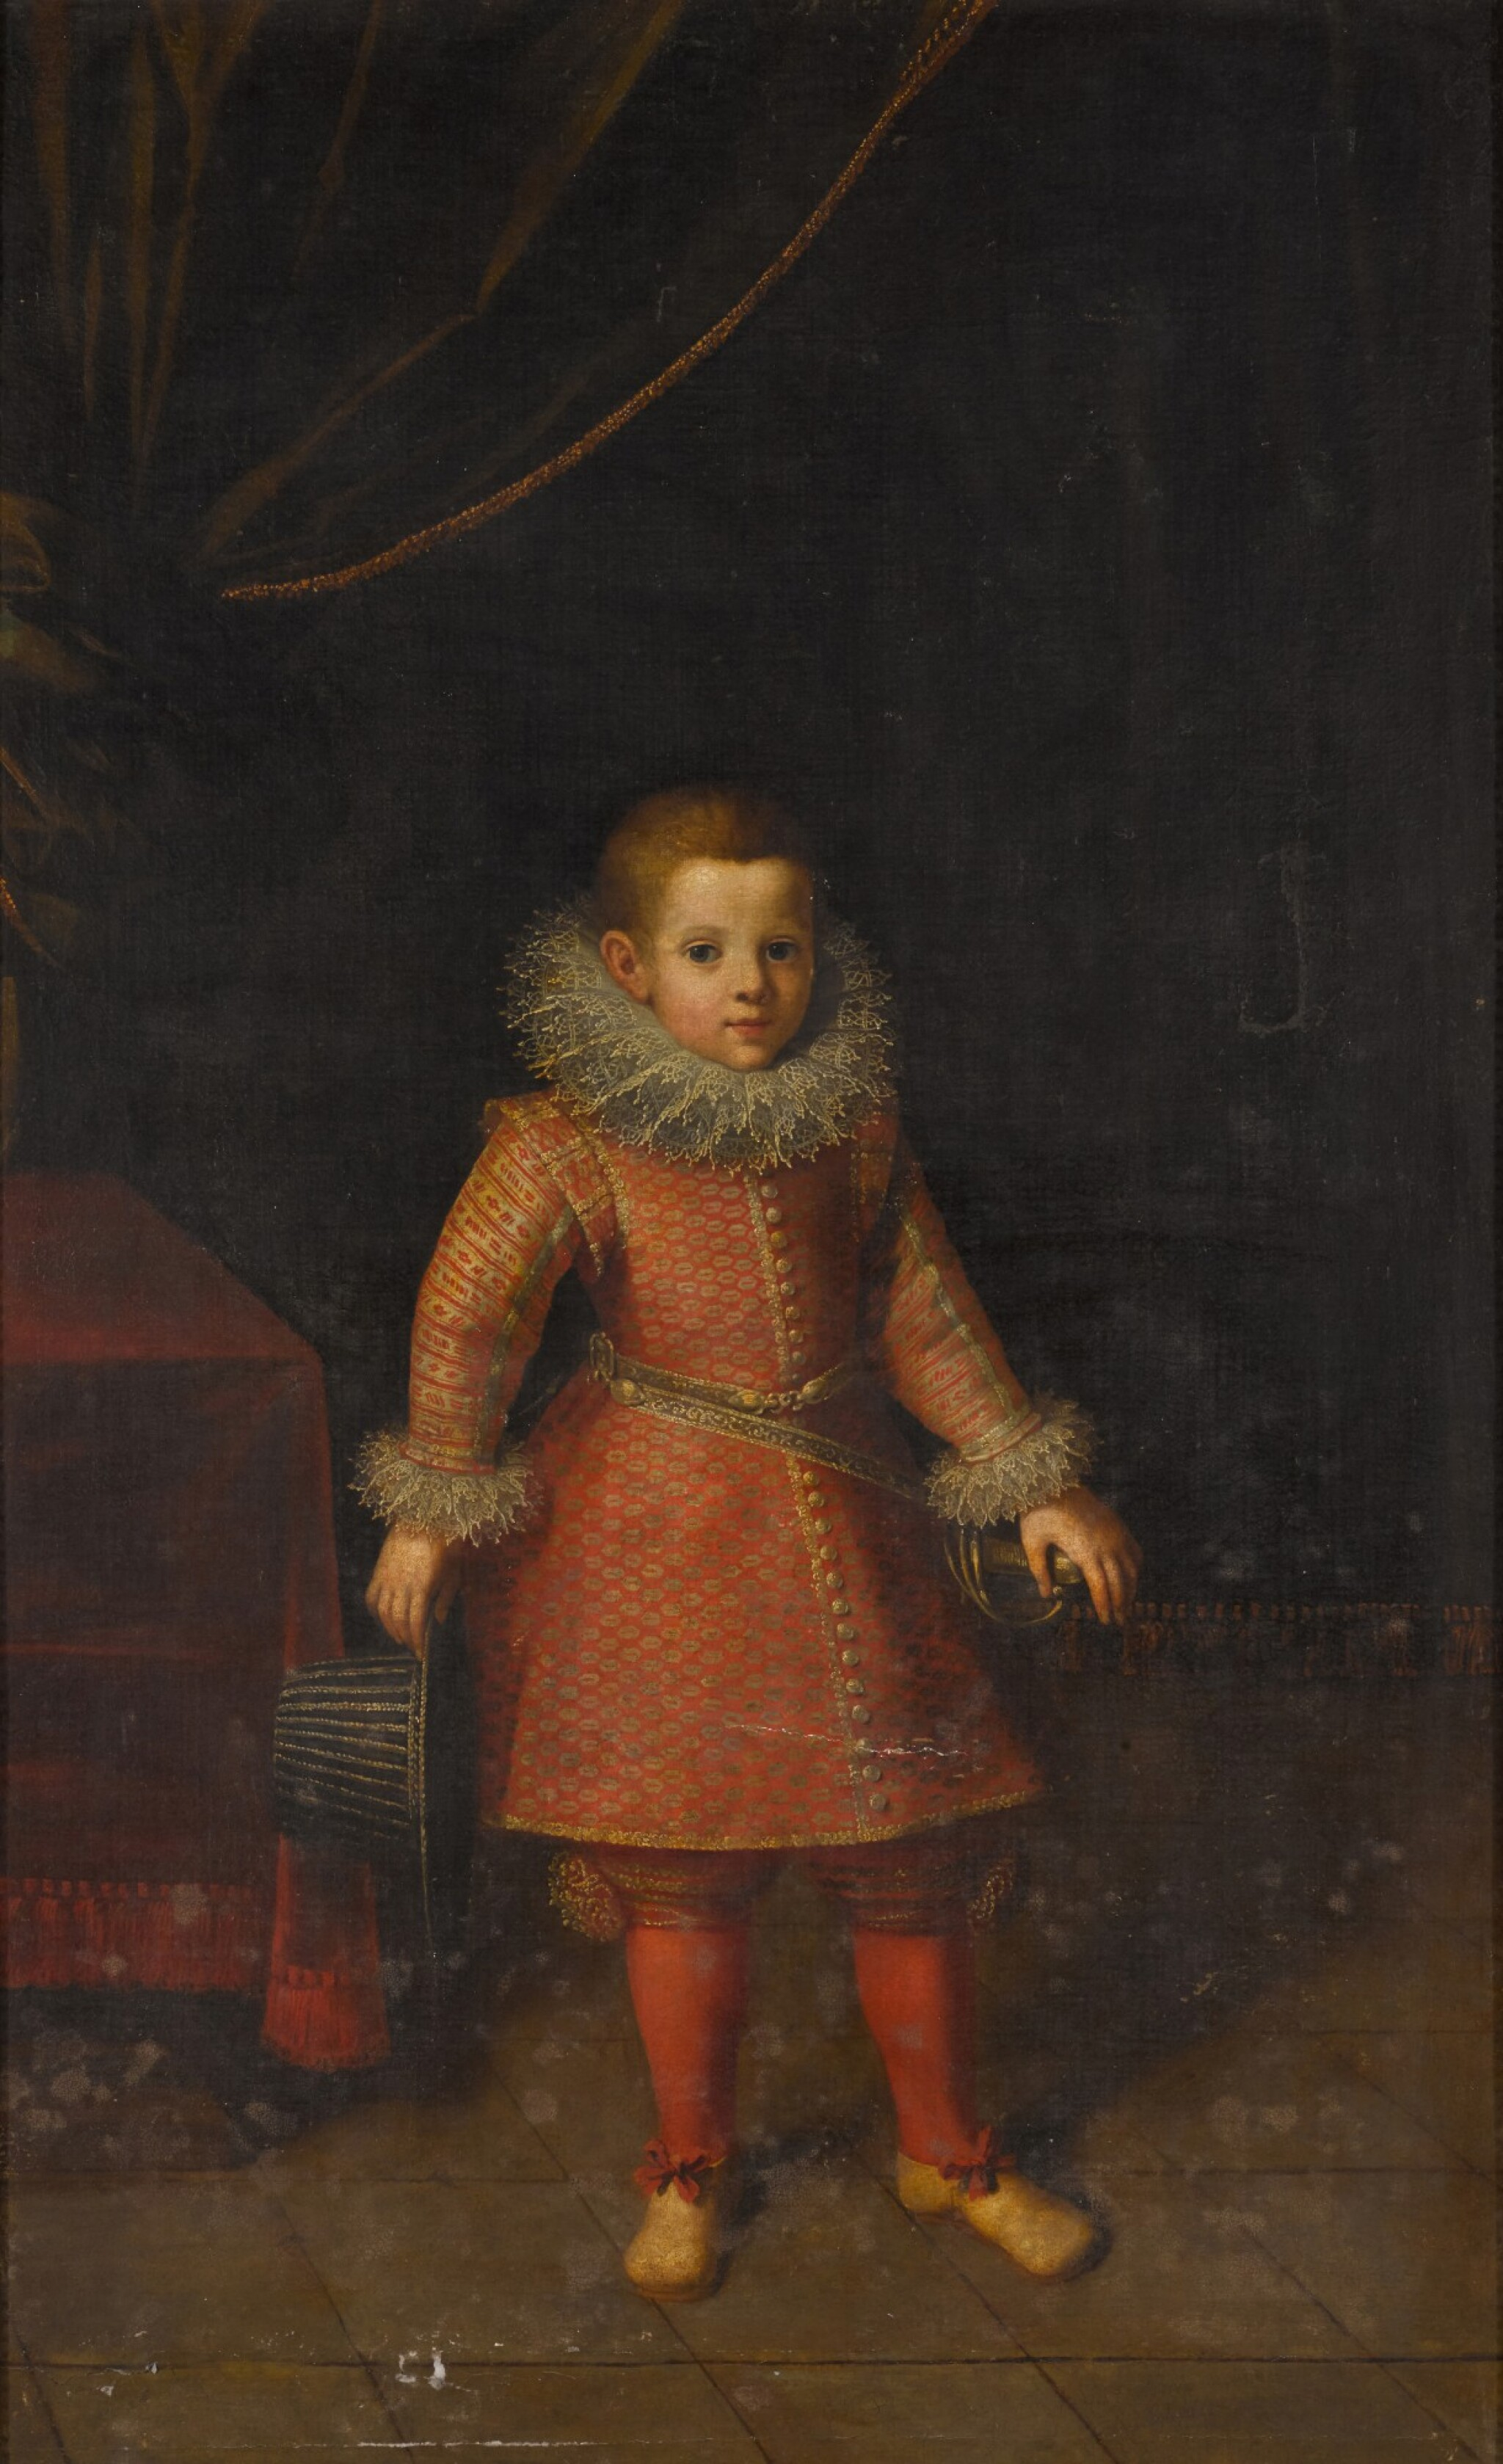 View 1 of Lot 109. Portrait of a boy, said to be Juan Luis de la Cerda, 5th Duke of Medinaceli (1544-94), full-length, holding a hat in his right hand.